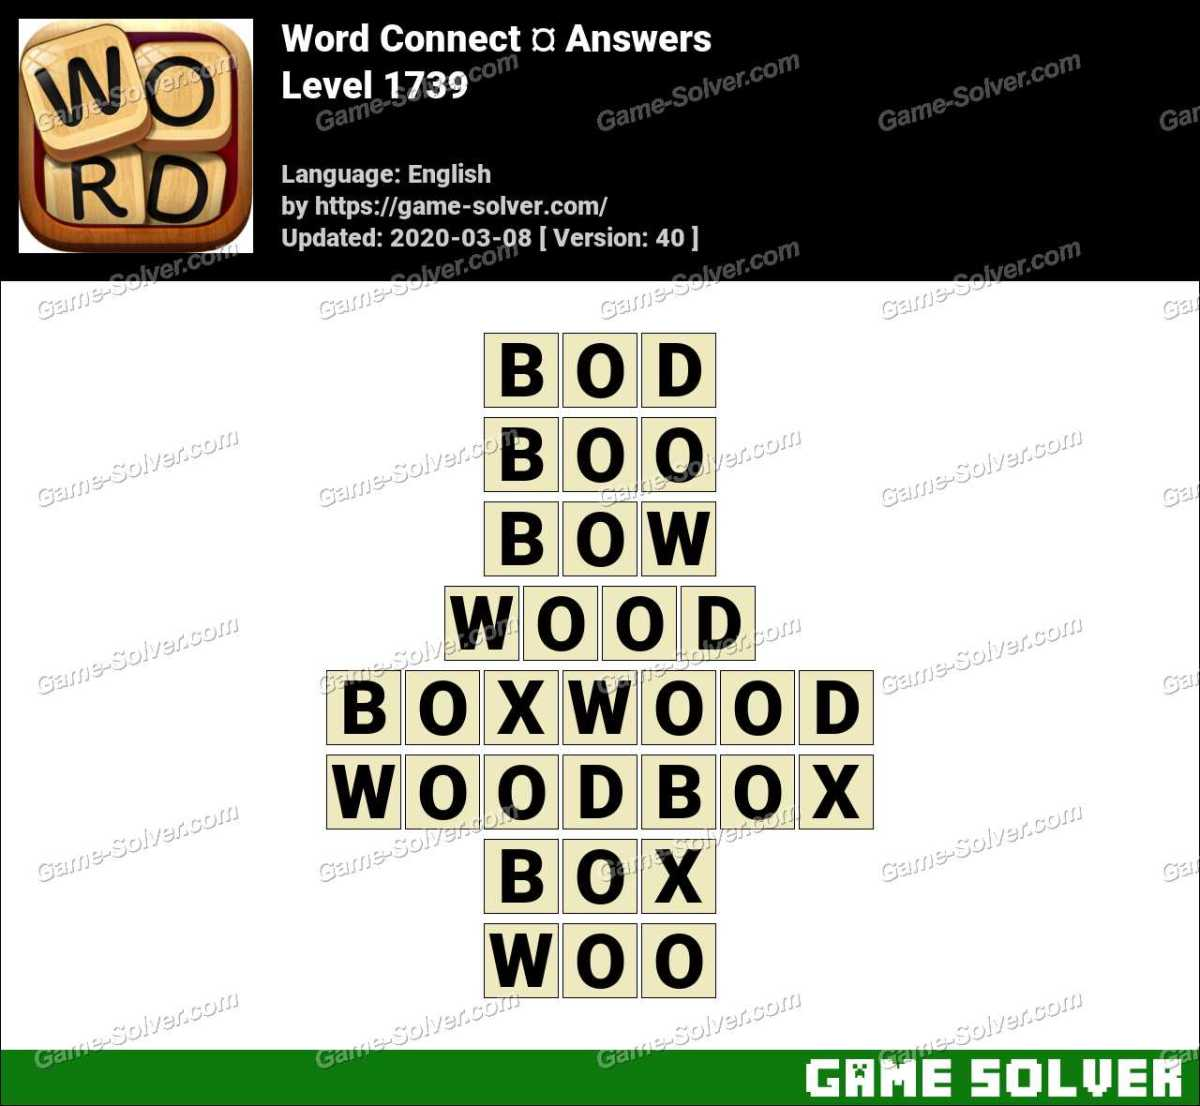 Word Connect Level 1739 Answers